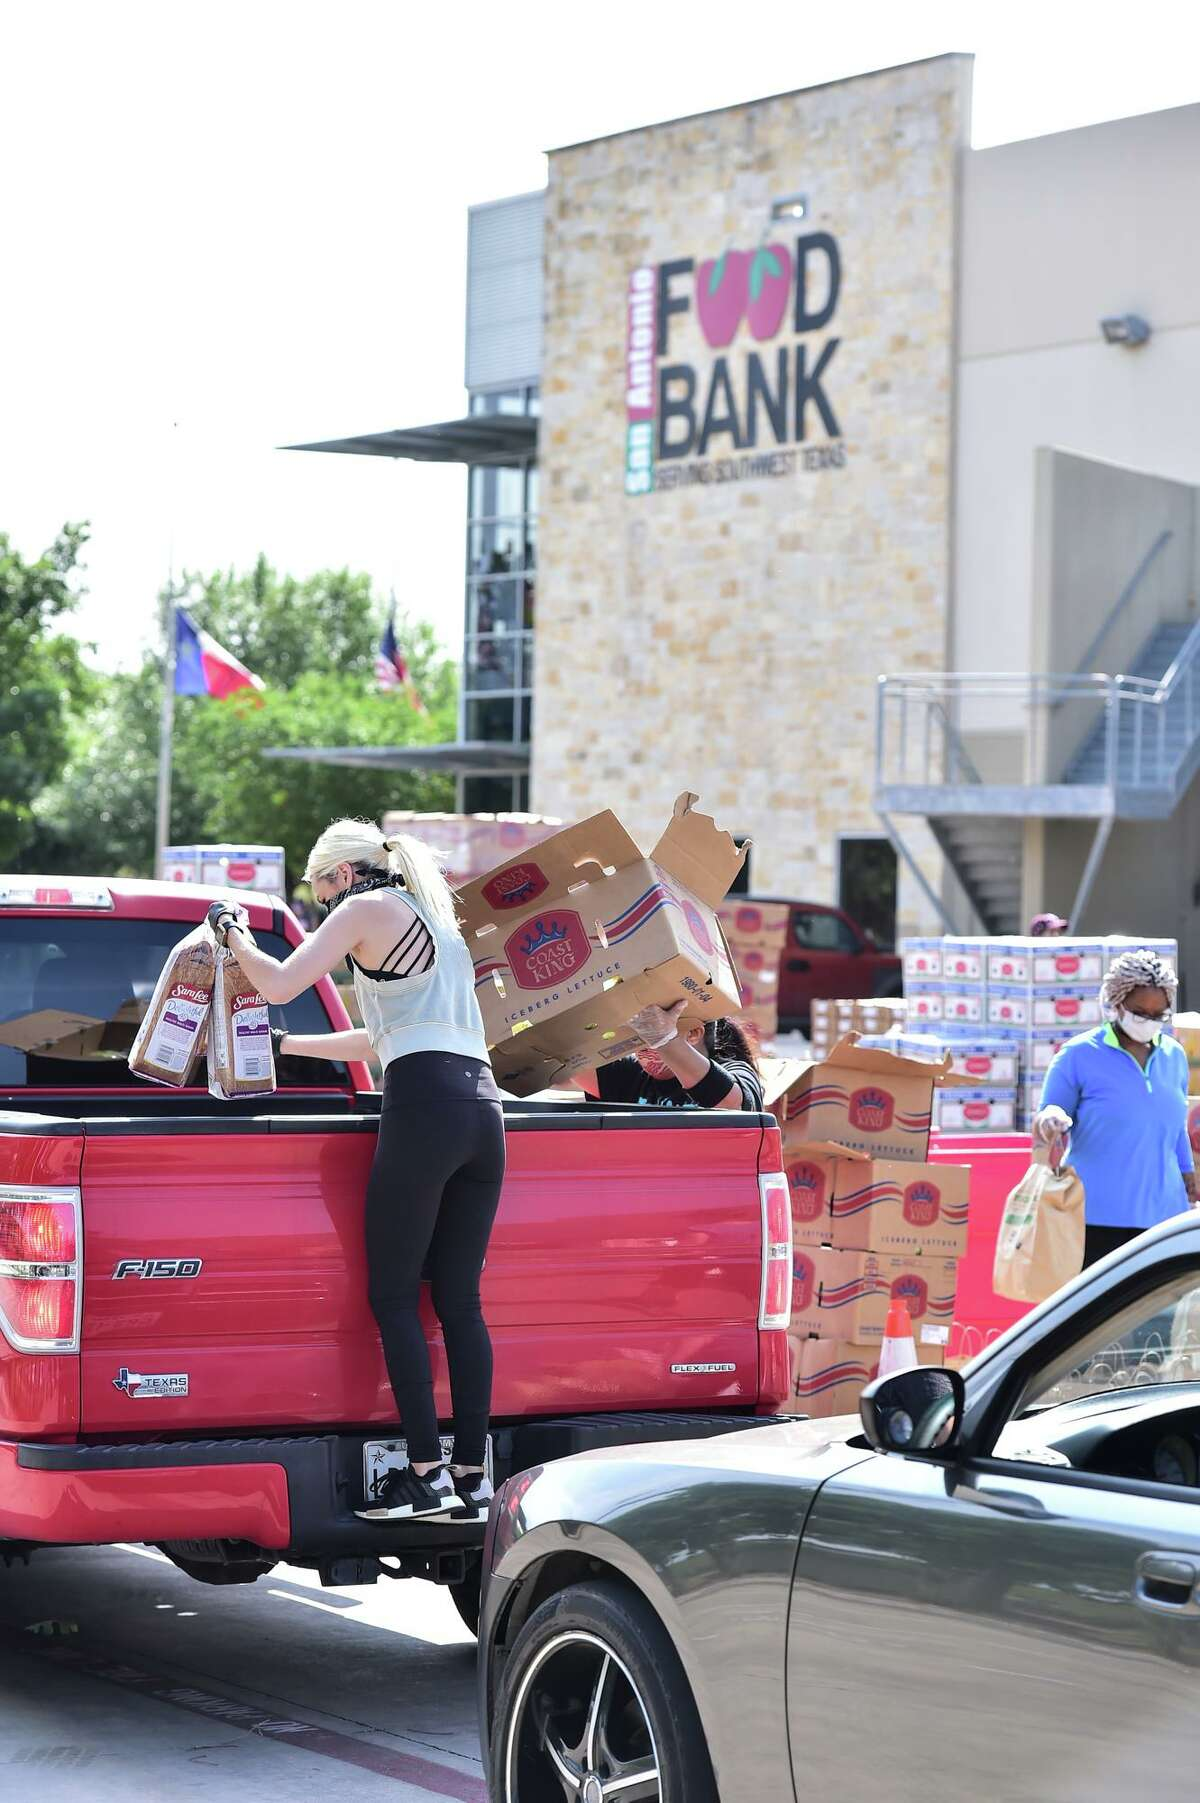 """Volunteers load a truck Saturday during a food distribution at the San Antonio Food Bank. """"To Go For Good"""" has set a goal of raising $150,000 to help the Food Bank, which is feeding 120,000 people weekly during the coronavirus pandemic, more than double what it did before COVID-19."""